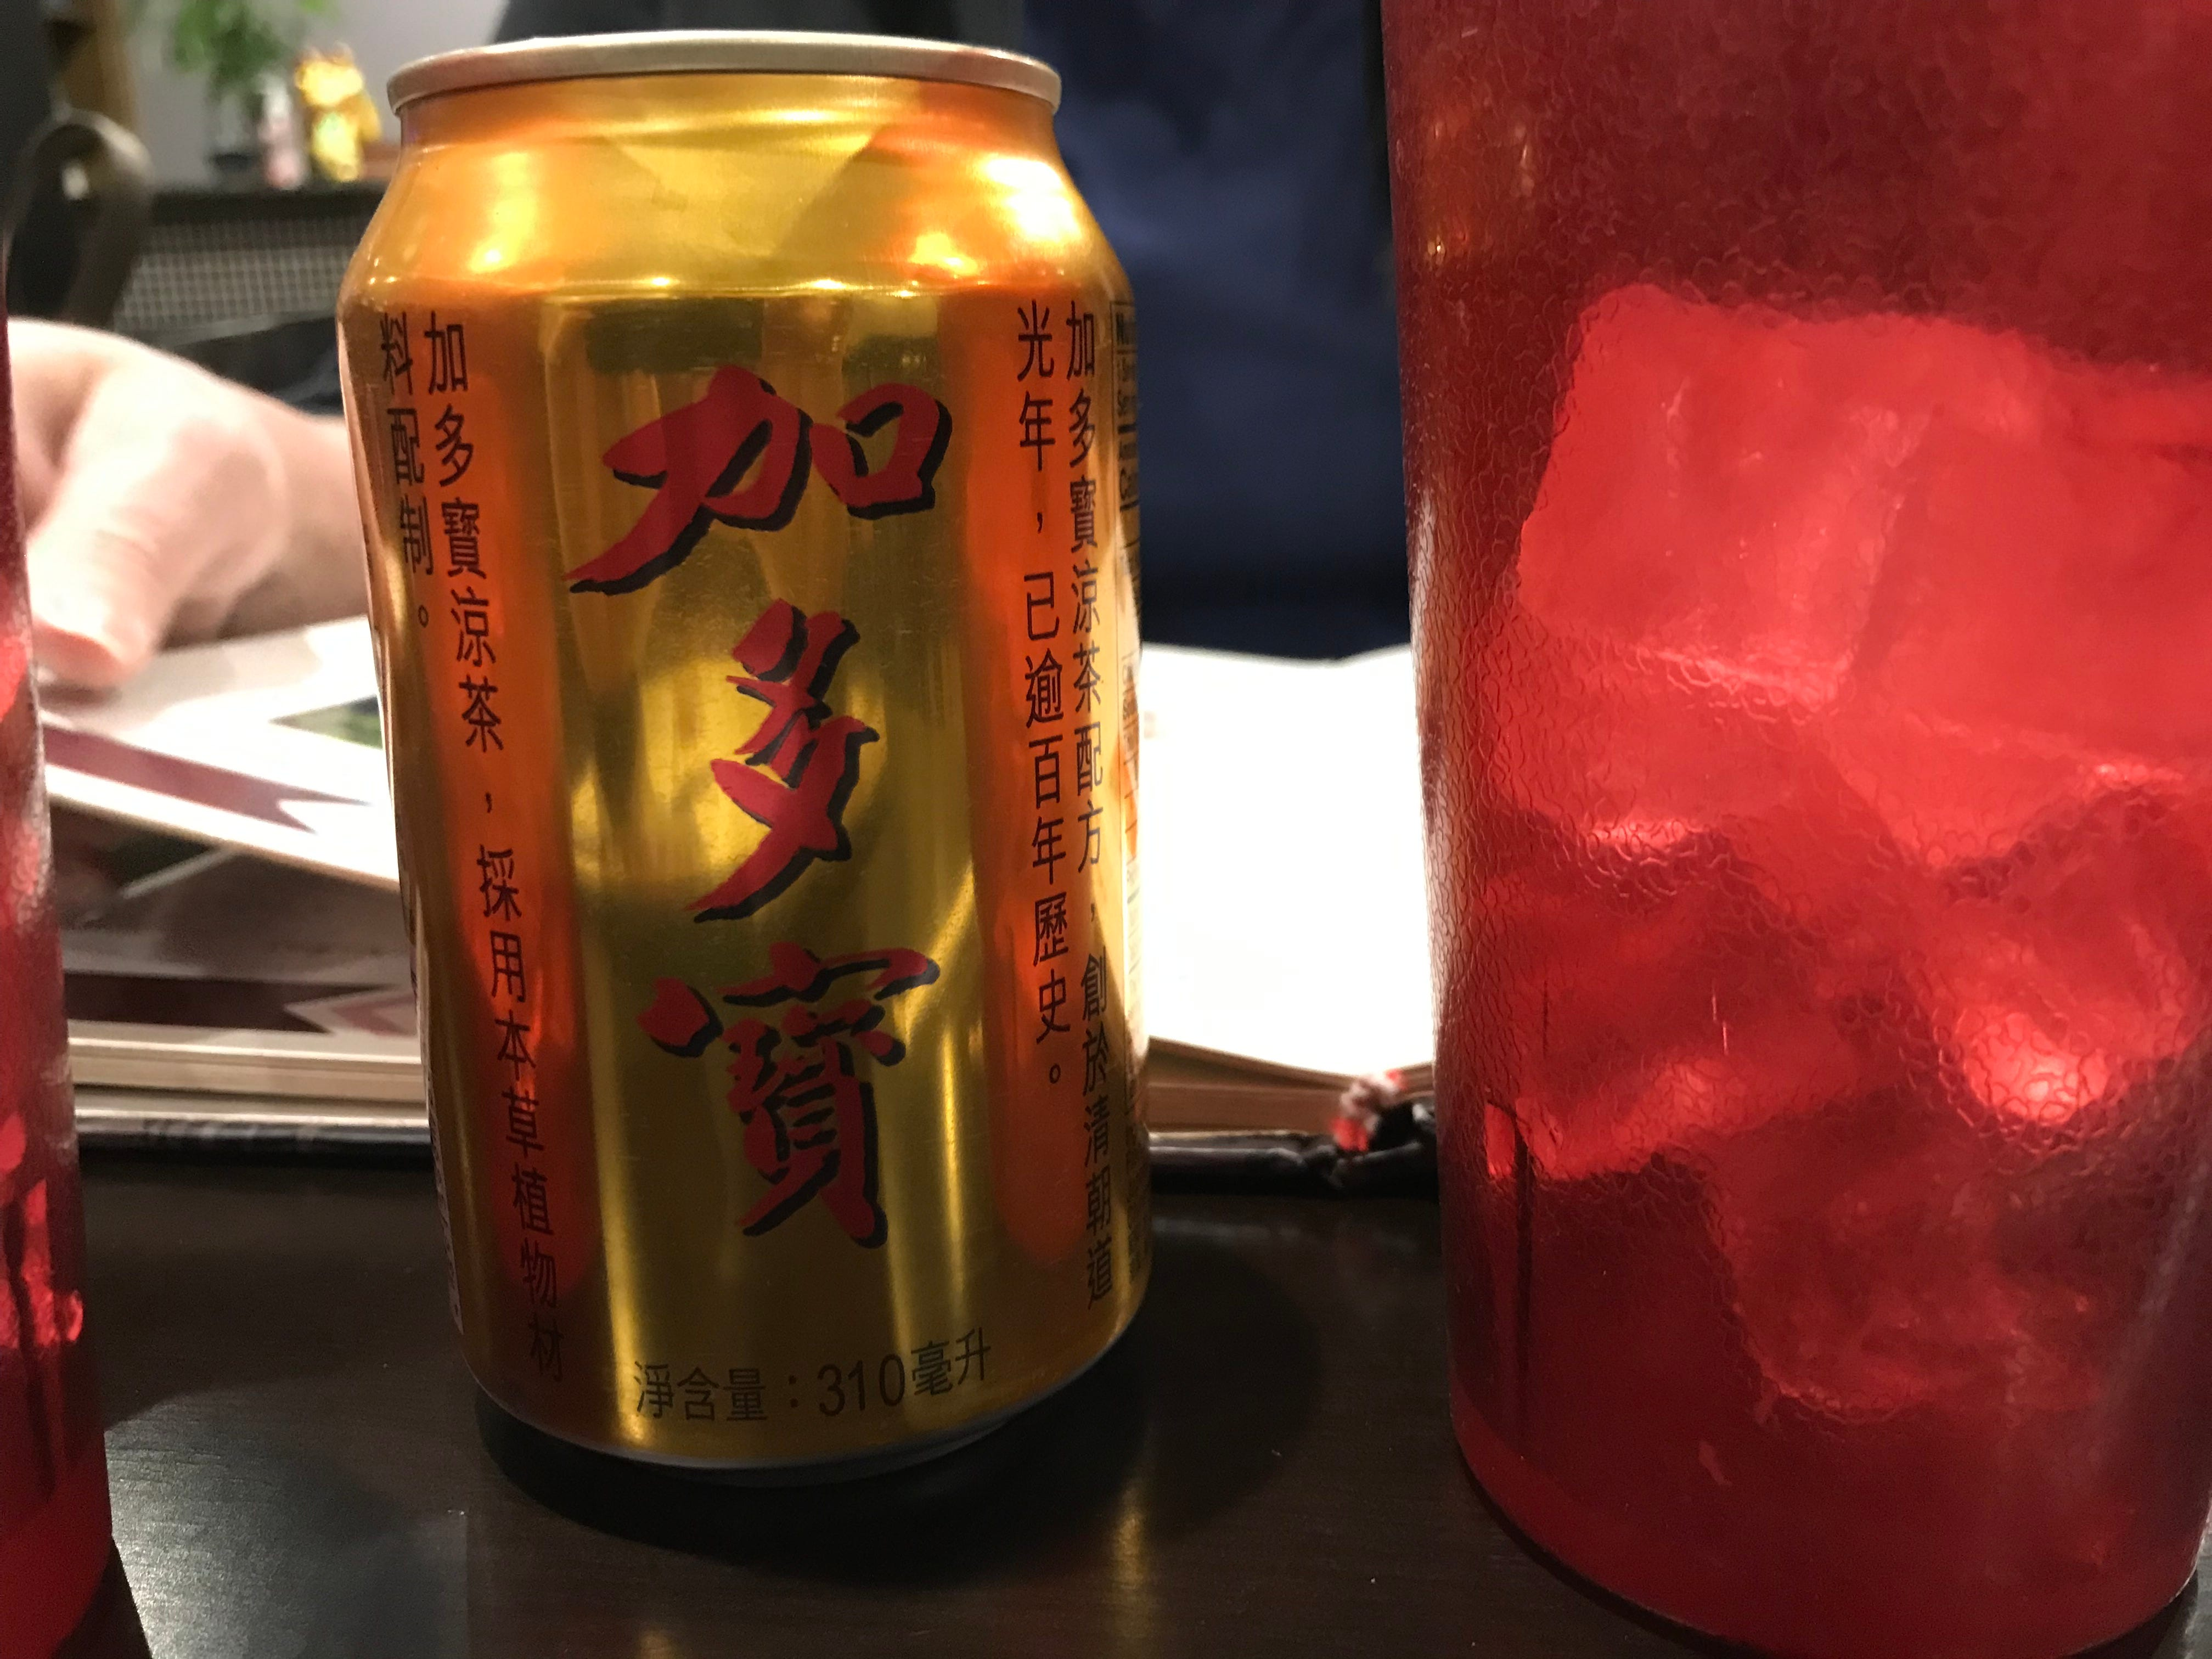 Shu Ge's Chinese tea in this 12-ounce can tasted like sweet tea with lemon.